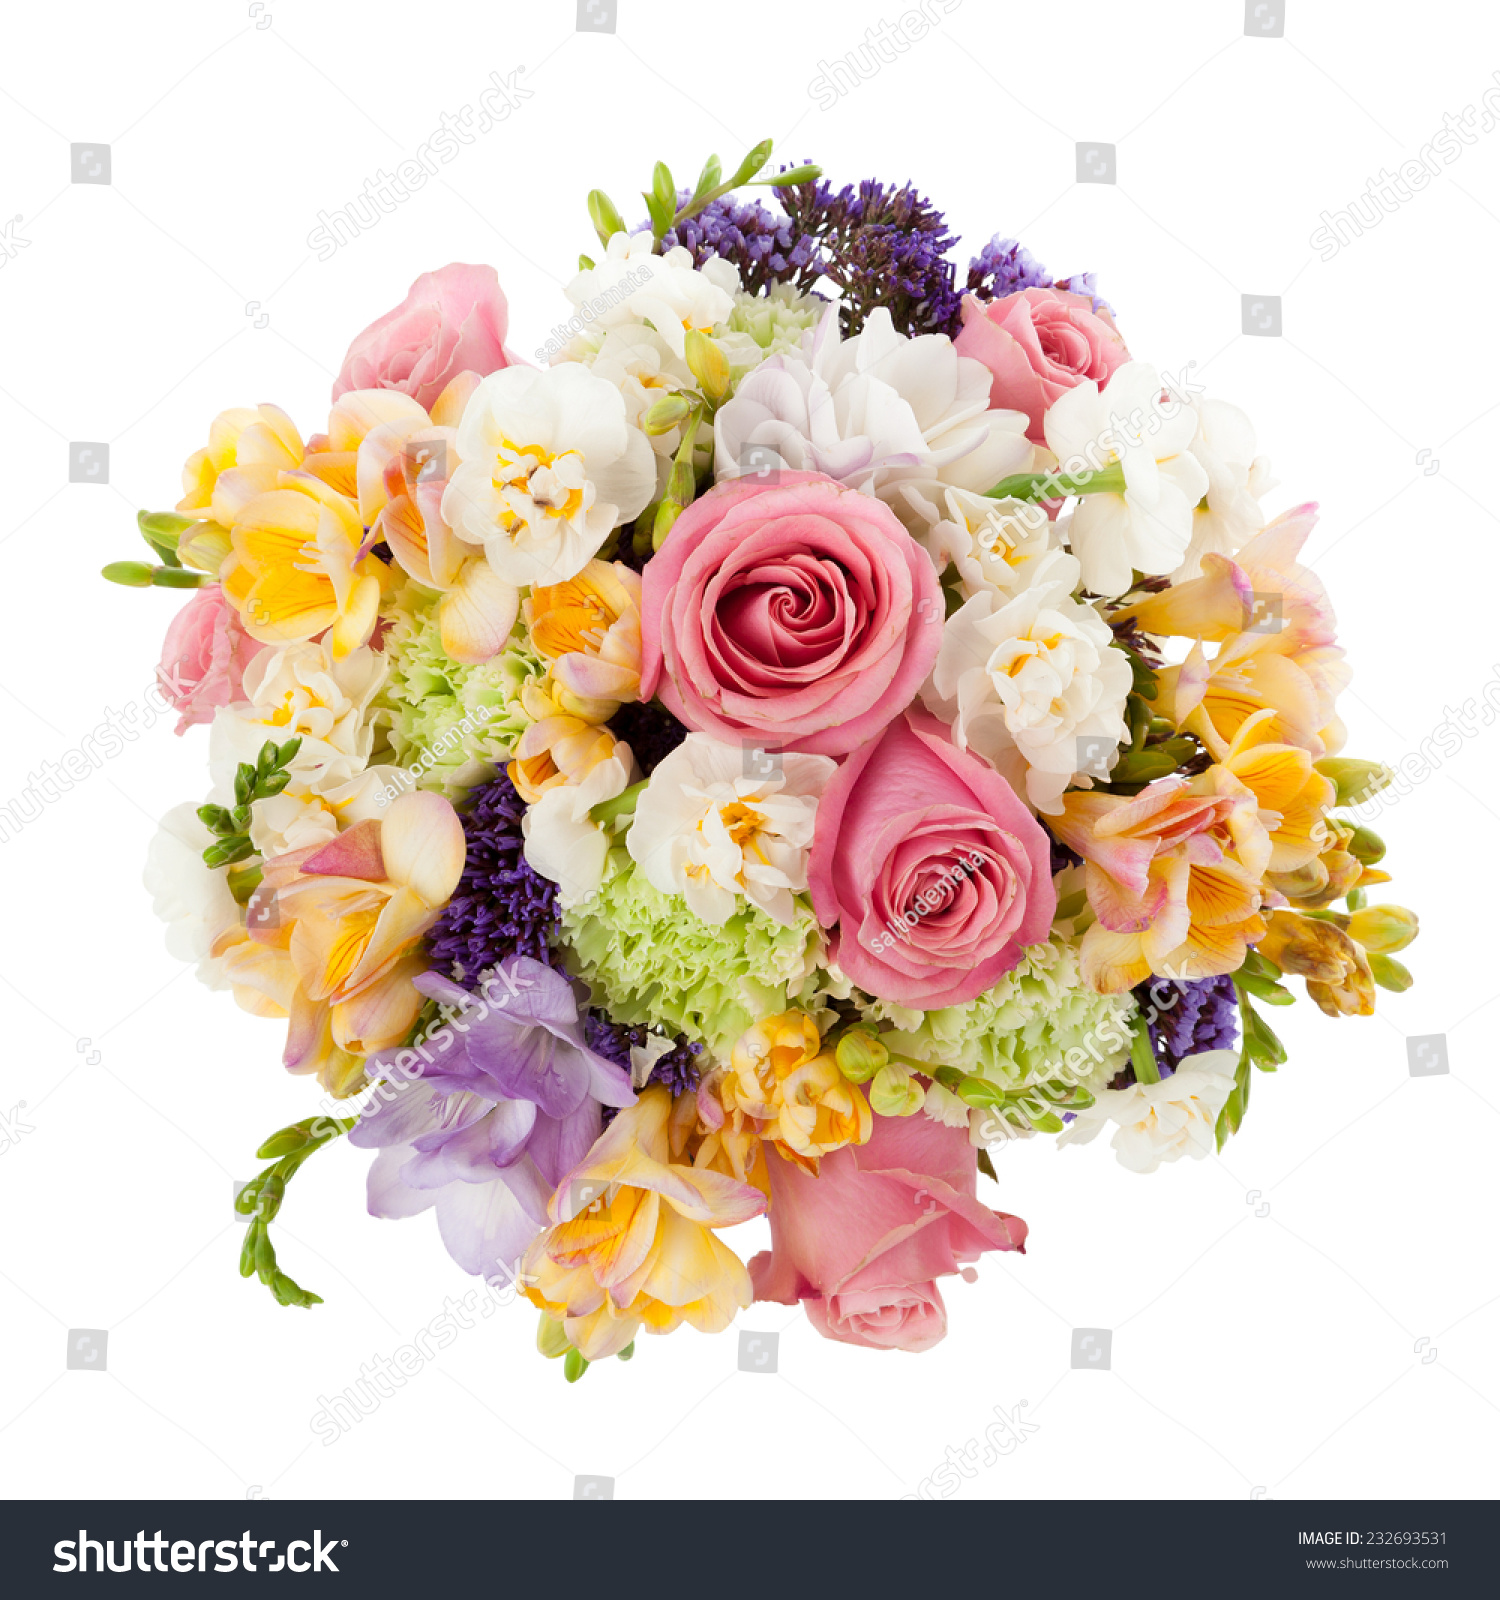 pastel colors wedding bouquet made of roses freesia carnation and limonium flowers seen from. Black Bedroom Furniture Sets. Home Design Ideas